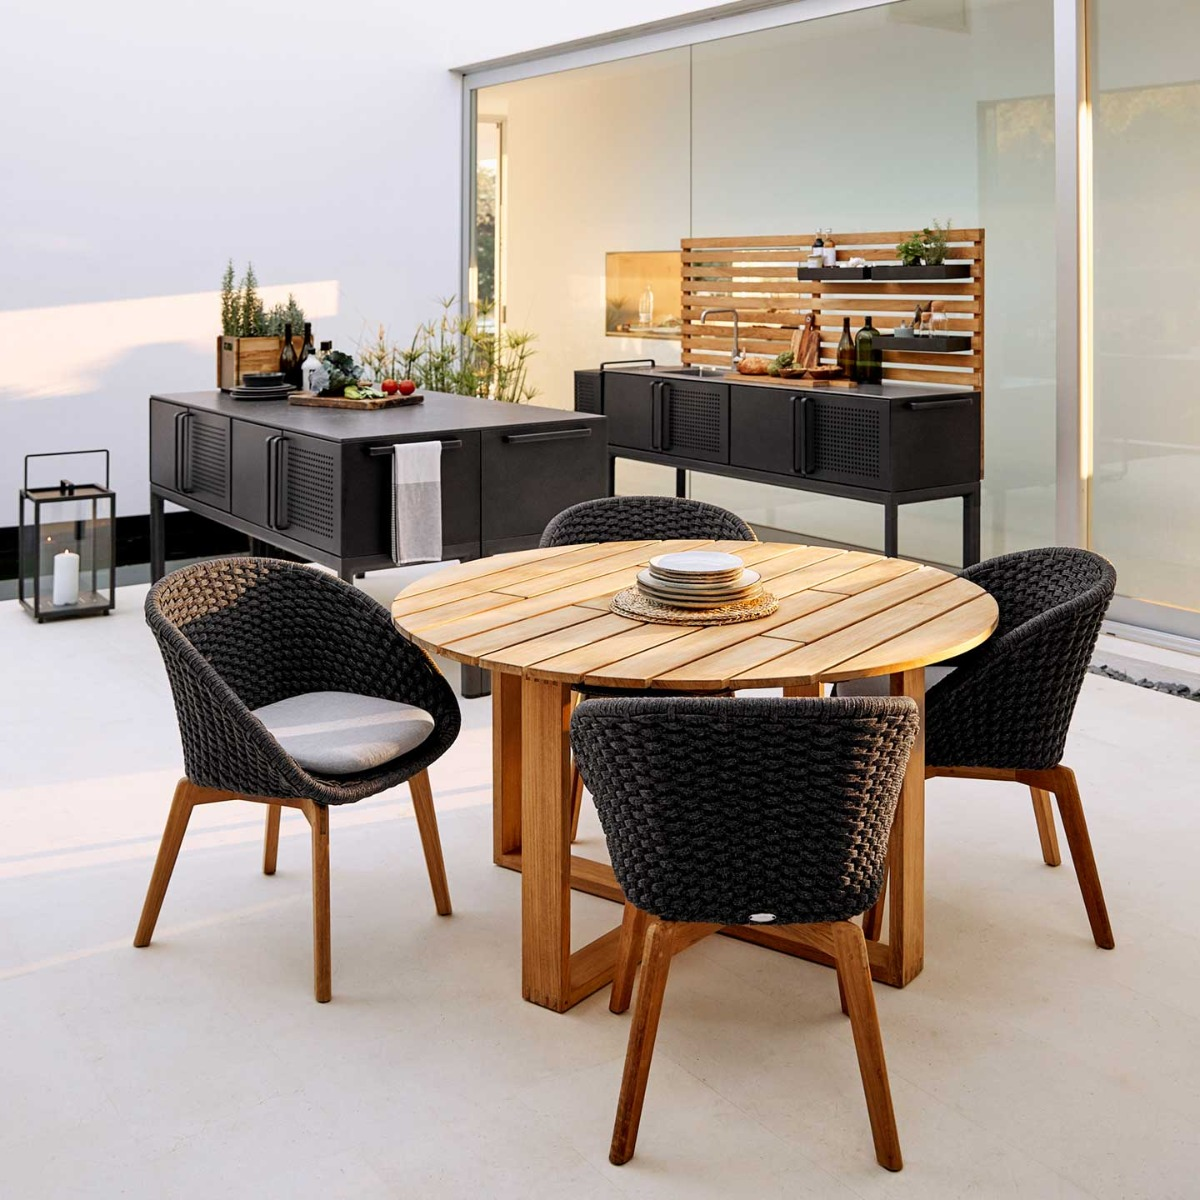 Endless small round dining table by Cane-line